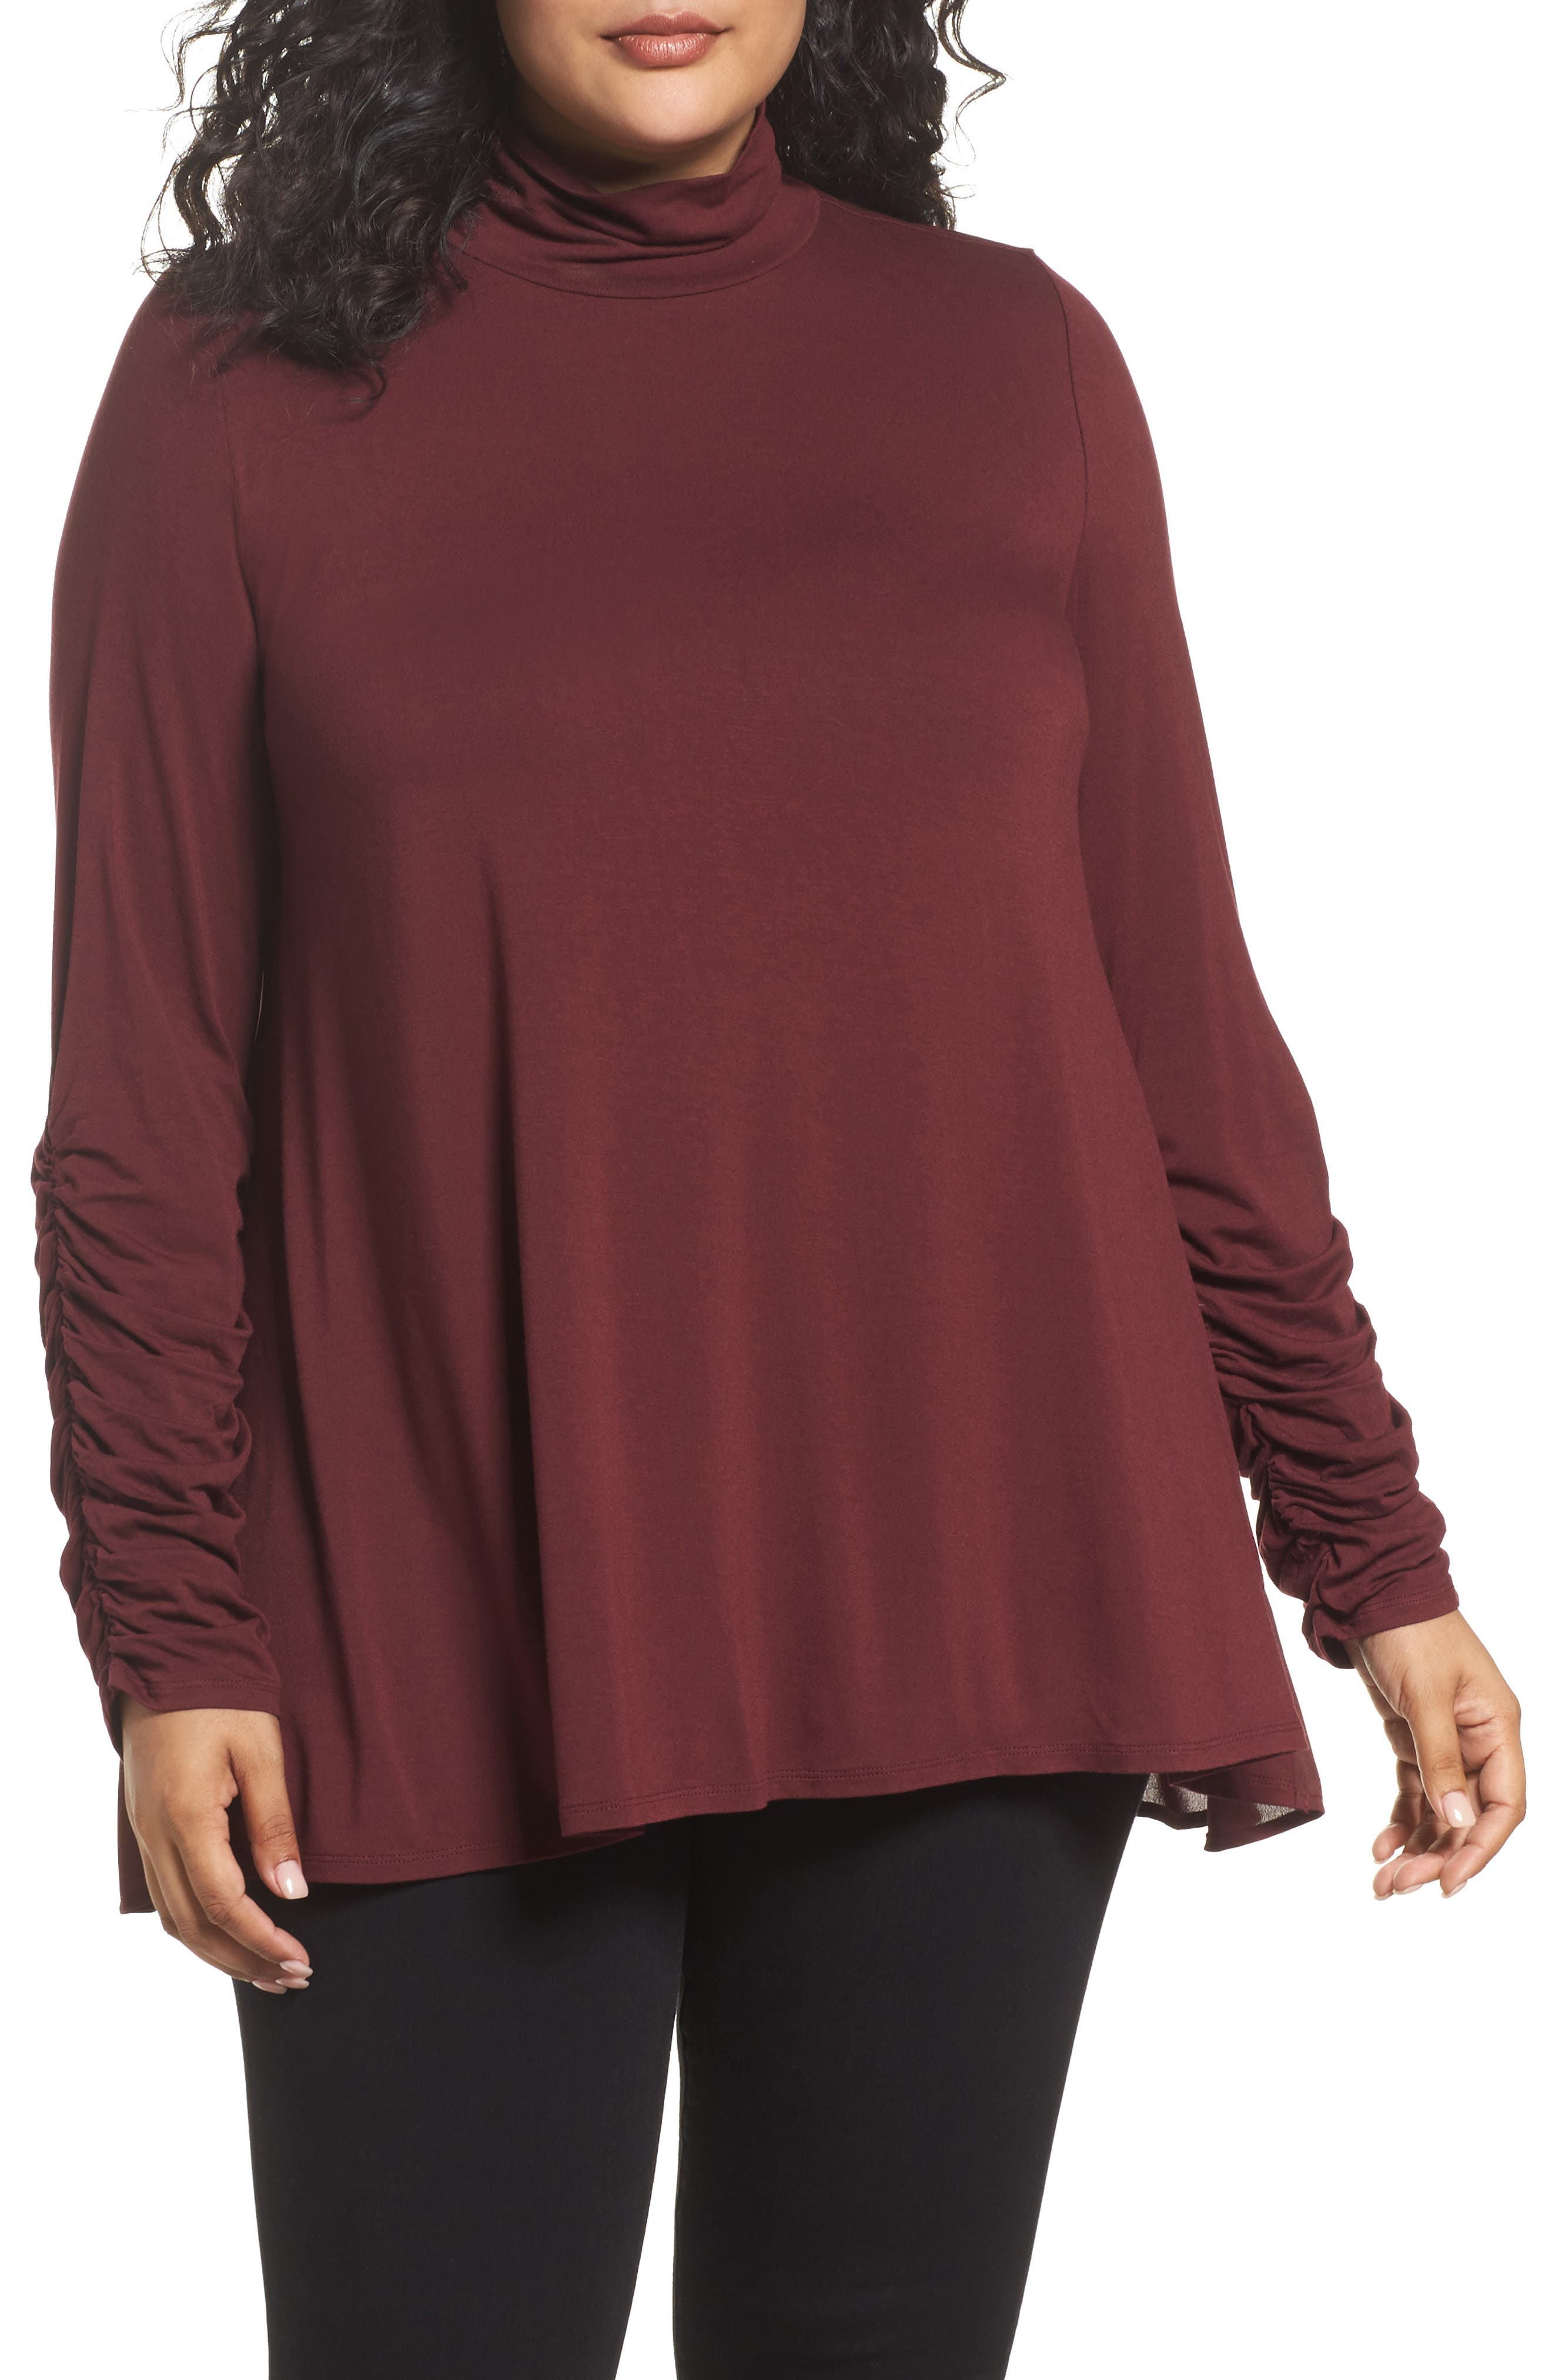 Ruched Sleeve Turtleneck Top,                             Main thumbnail 1, color,                             018